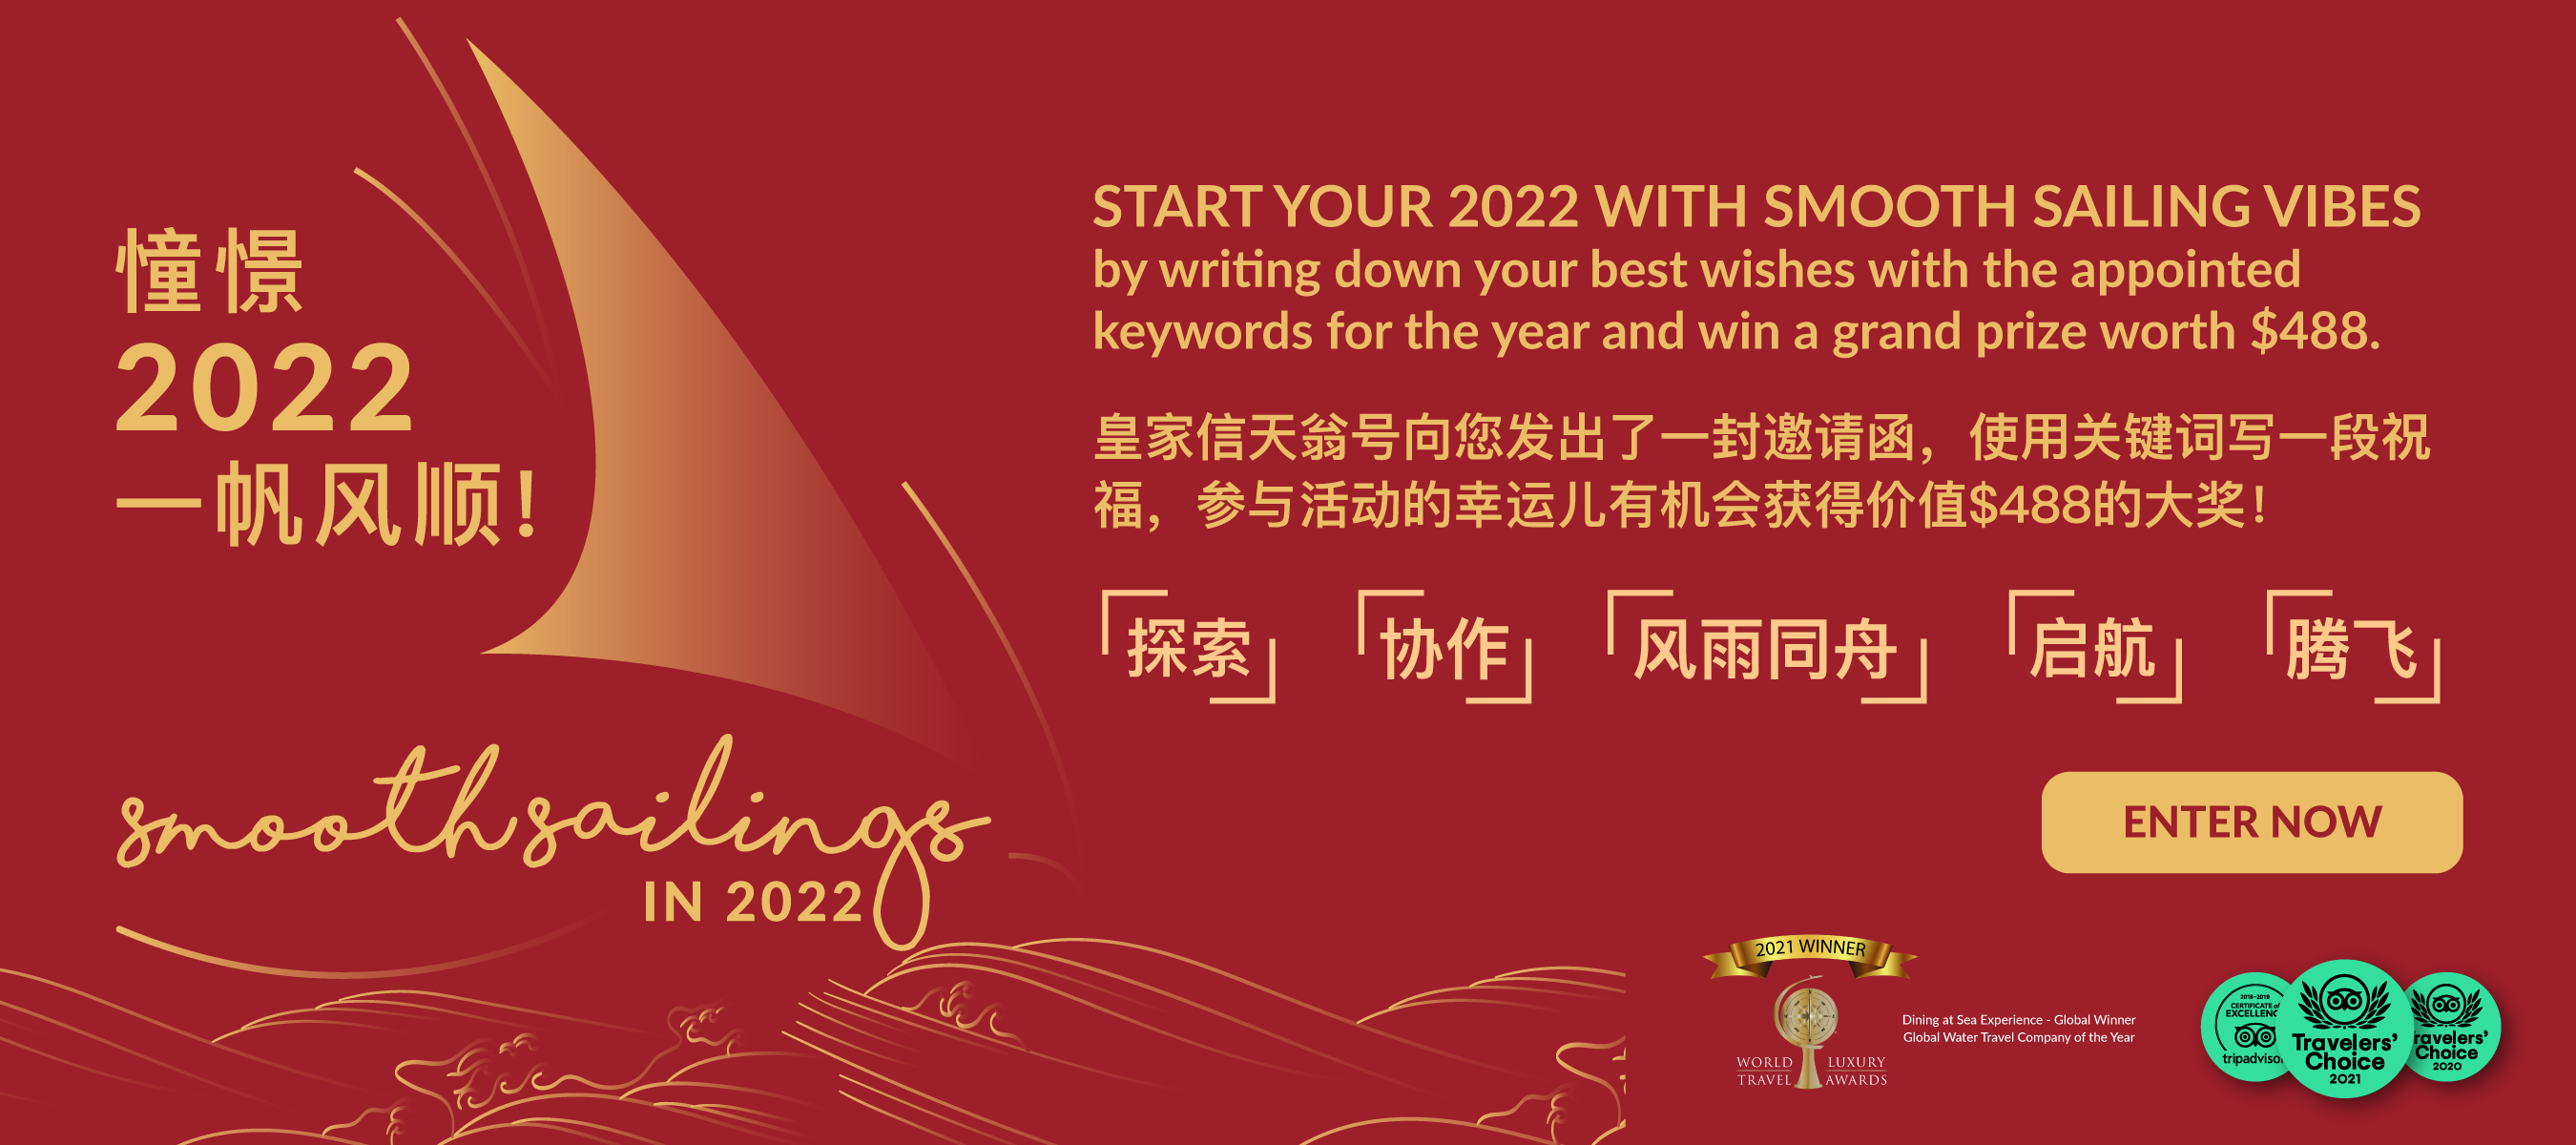 10_Oct_CNSmooth-Sailing-in-2022_2700x1200